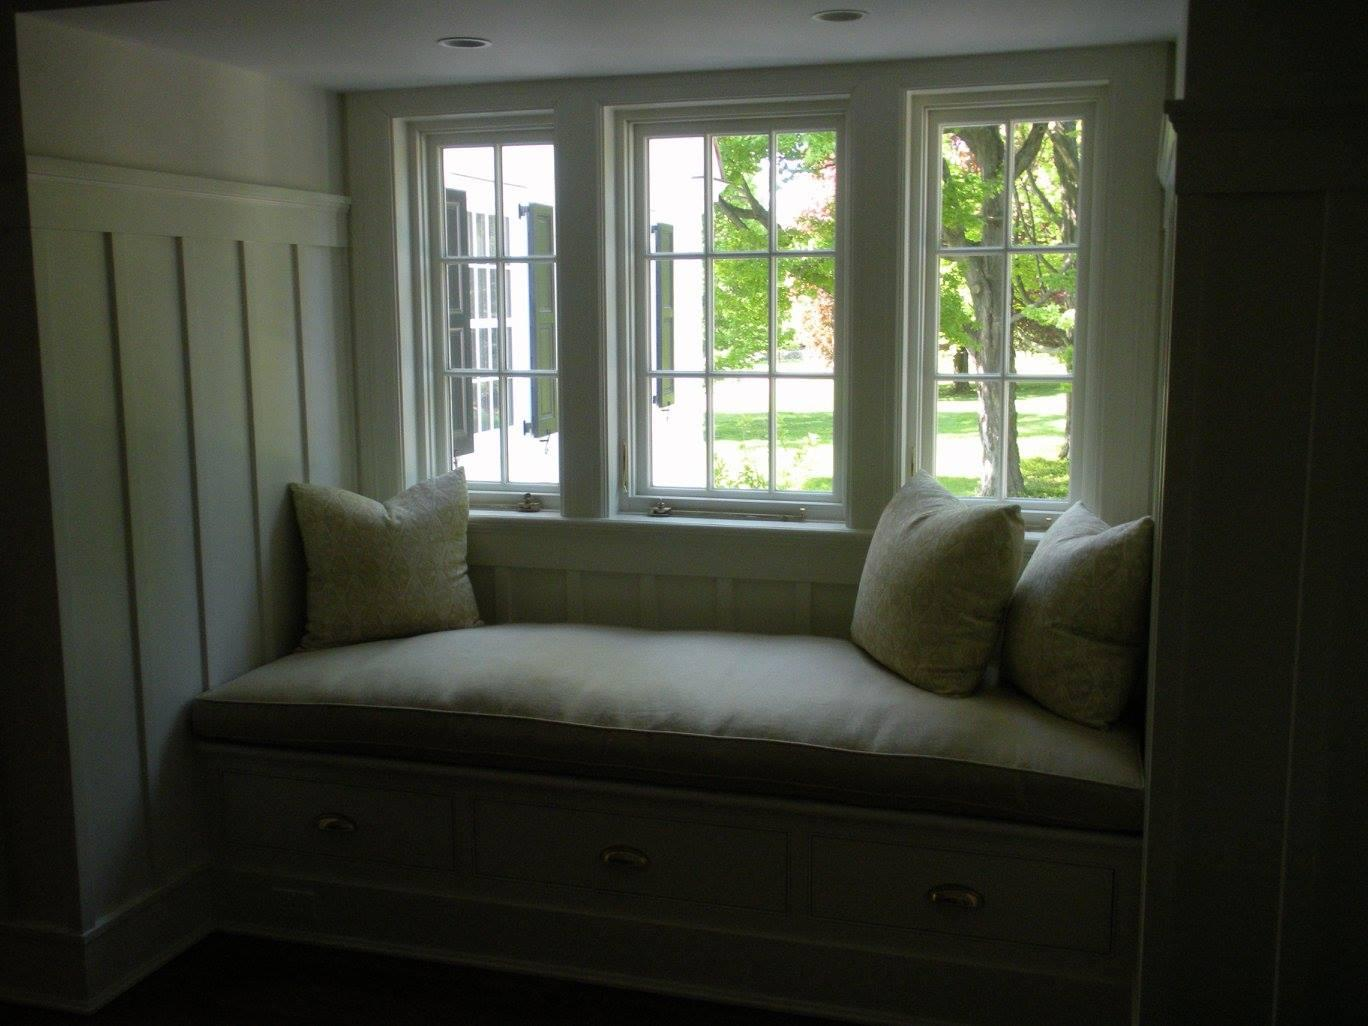 Living Room Remodel with Window Seat